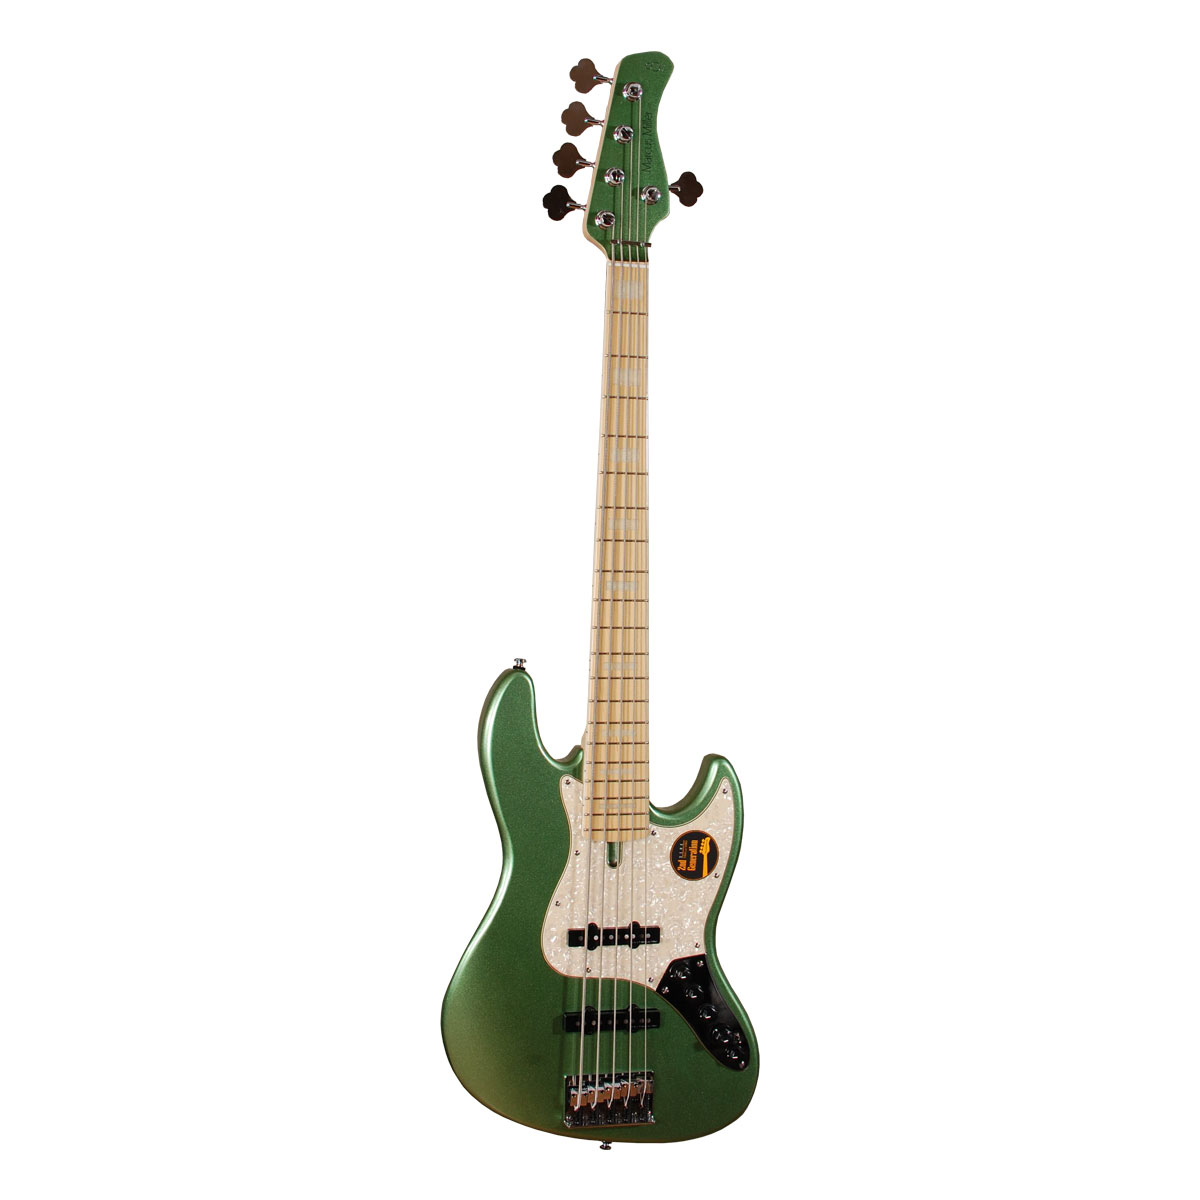 Image of   Sire Marcus Miller V7 SWAMP ASH-5 2nd Gen SG el-bas, 5-strenget sherwood green